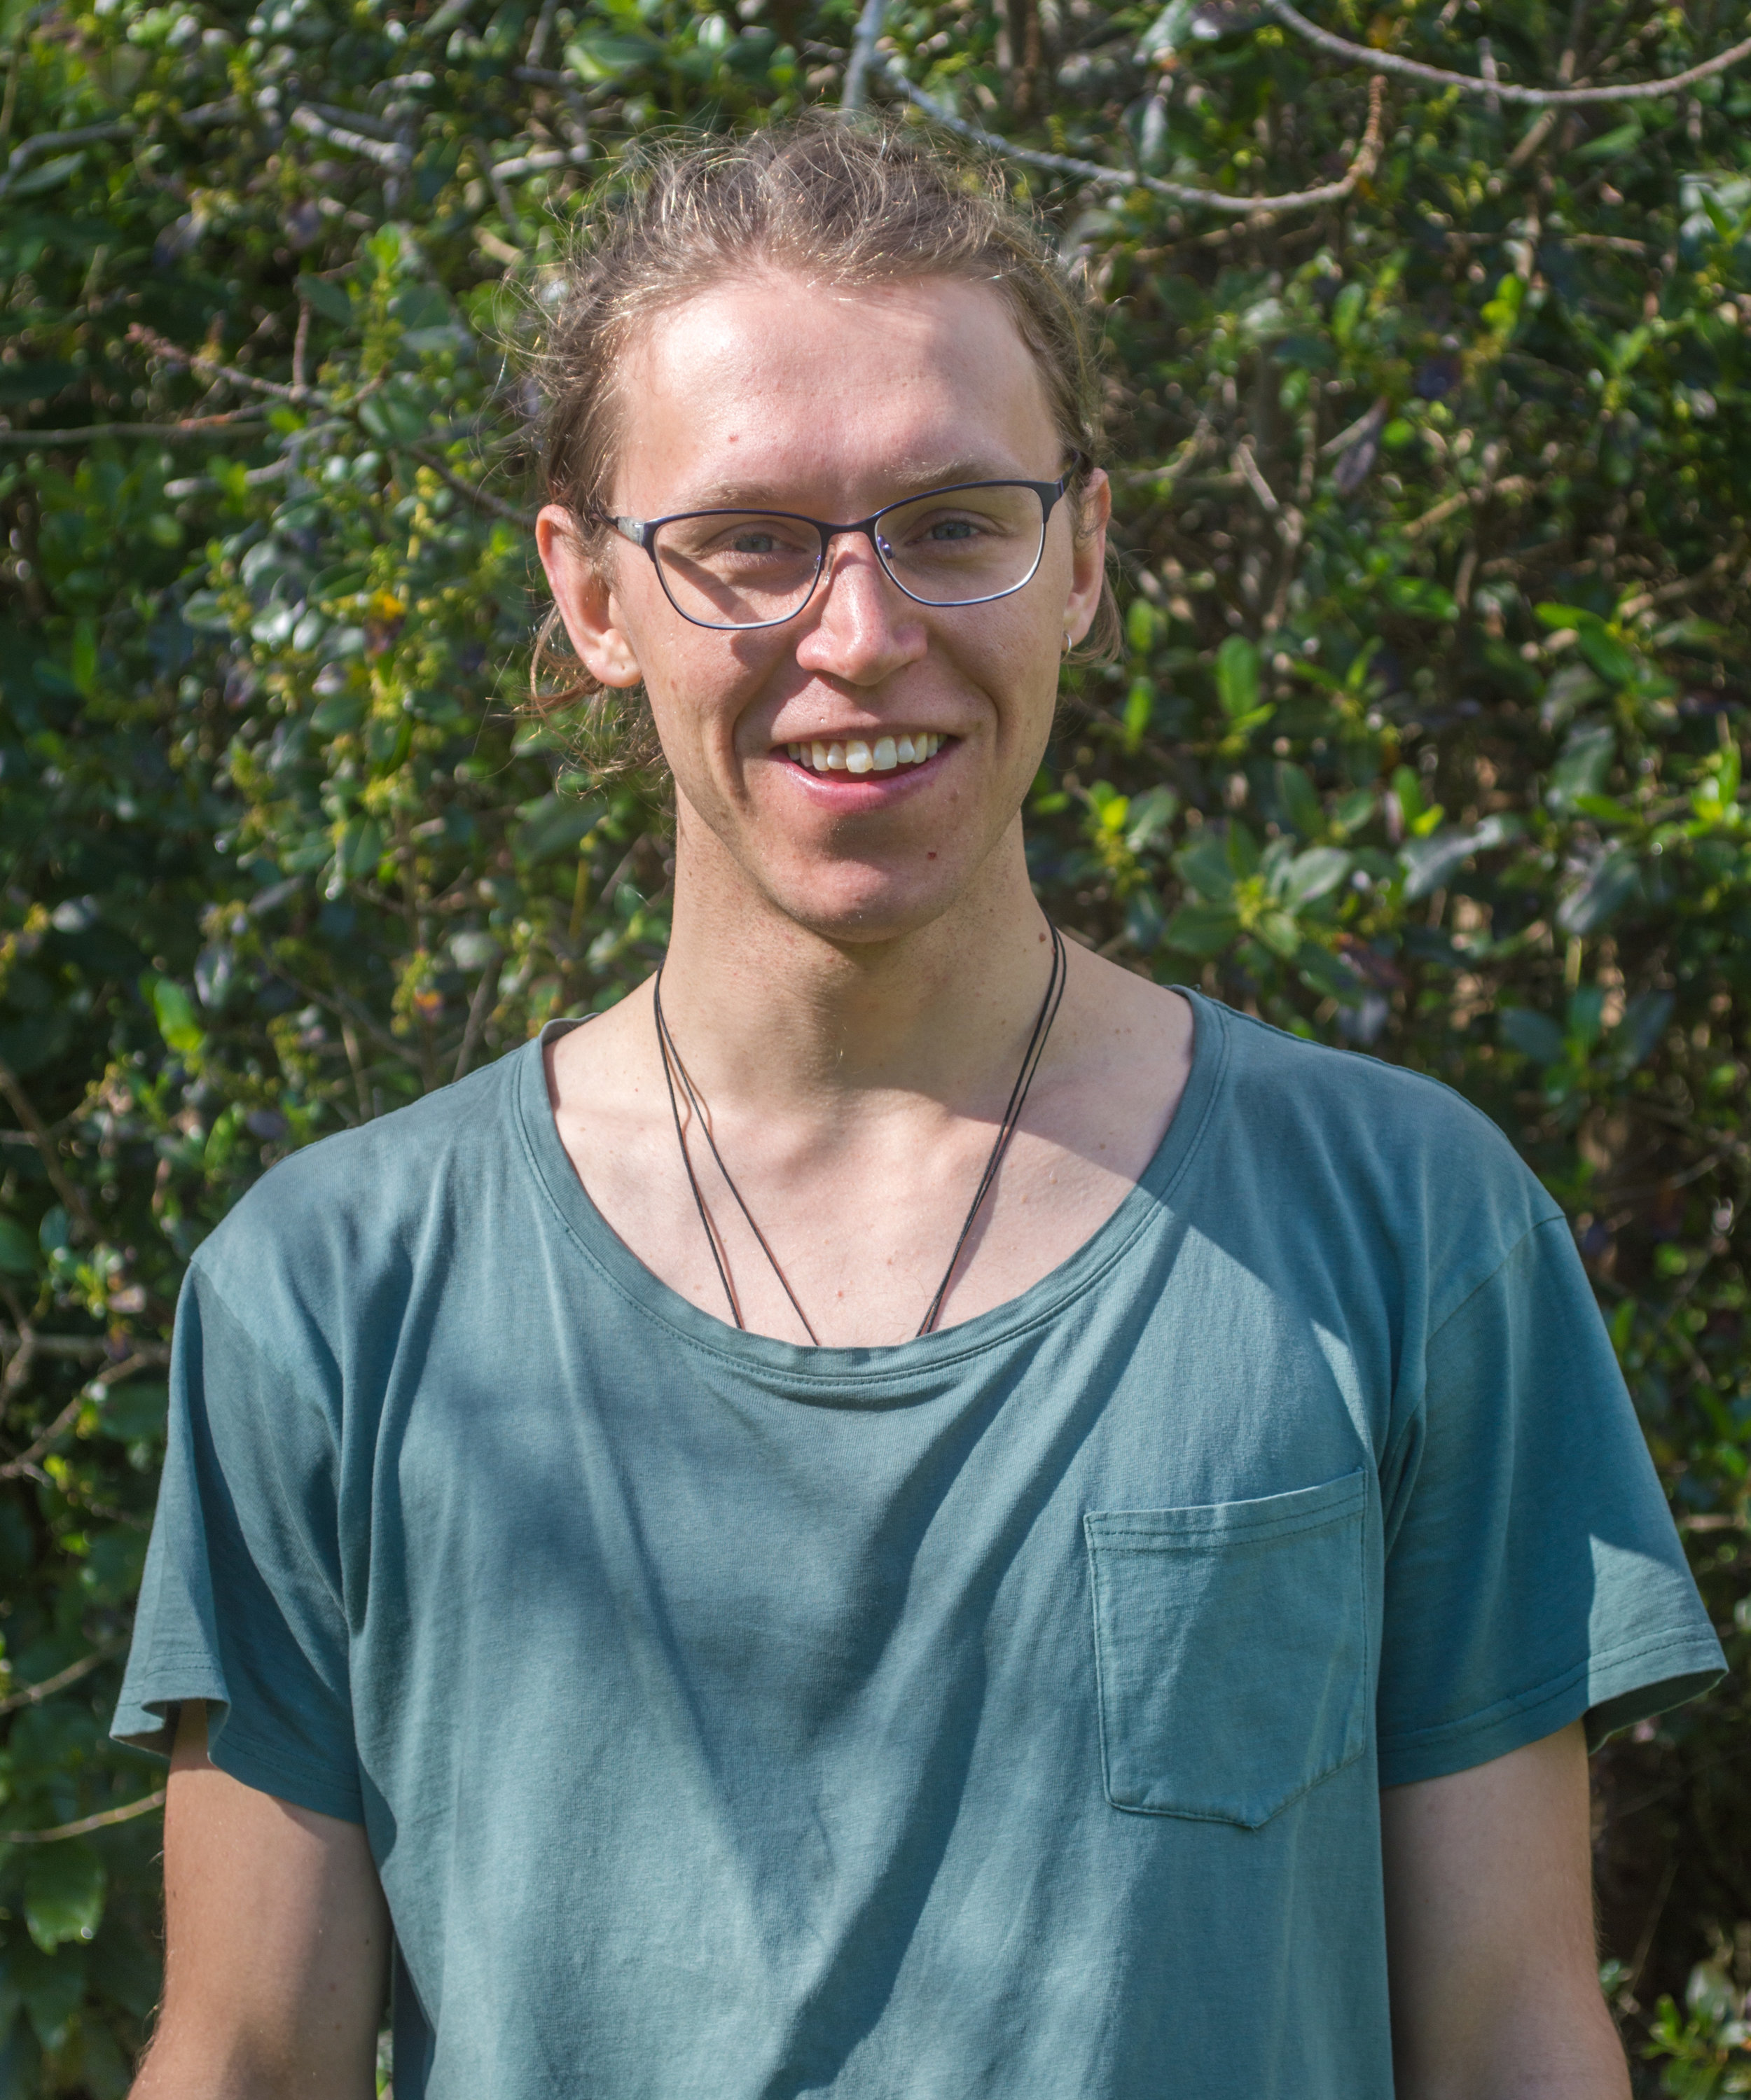 Rowan Brooks - I know I got a lot out of Bodhi Seeds and am sure furtherbenefits will become clear with time.At its core I benefited from time to be with sangha, in the supportive environment of the Wangapeka. My practice feels stronger and like I can work with greater clarity and intention. I can see how this may help me carry a greater sense of spaciousness, and integration into what could previously feel a busy and fragmented day to day.The weaving together of retreat work, group process anddana, as well as community living allowed me to find bothbreadth and depth of insight into patterns in my being.Within the program I could find continual opportunities toapply practice, and develop skilful means to relate toothers.The space for emergence that Jaime held within Bodhi Seeds created opportunities for me to facilitate some pieces and hold space, and for a degree of fluidity that kept the program feeling relevant to the edges I want to explore and develop. I am incredibly grateful to all the support that allowed Bodhi Seeds to happen.